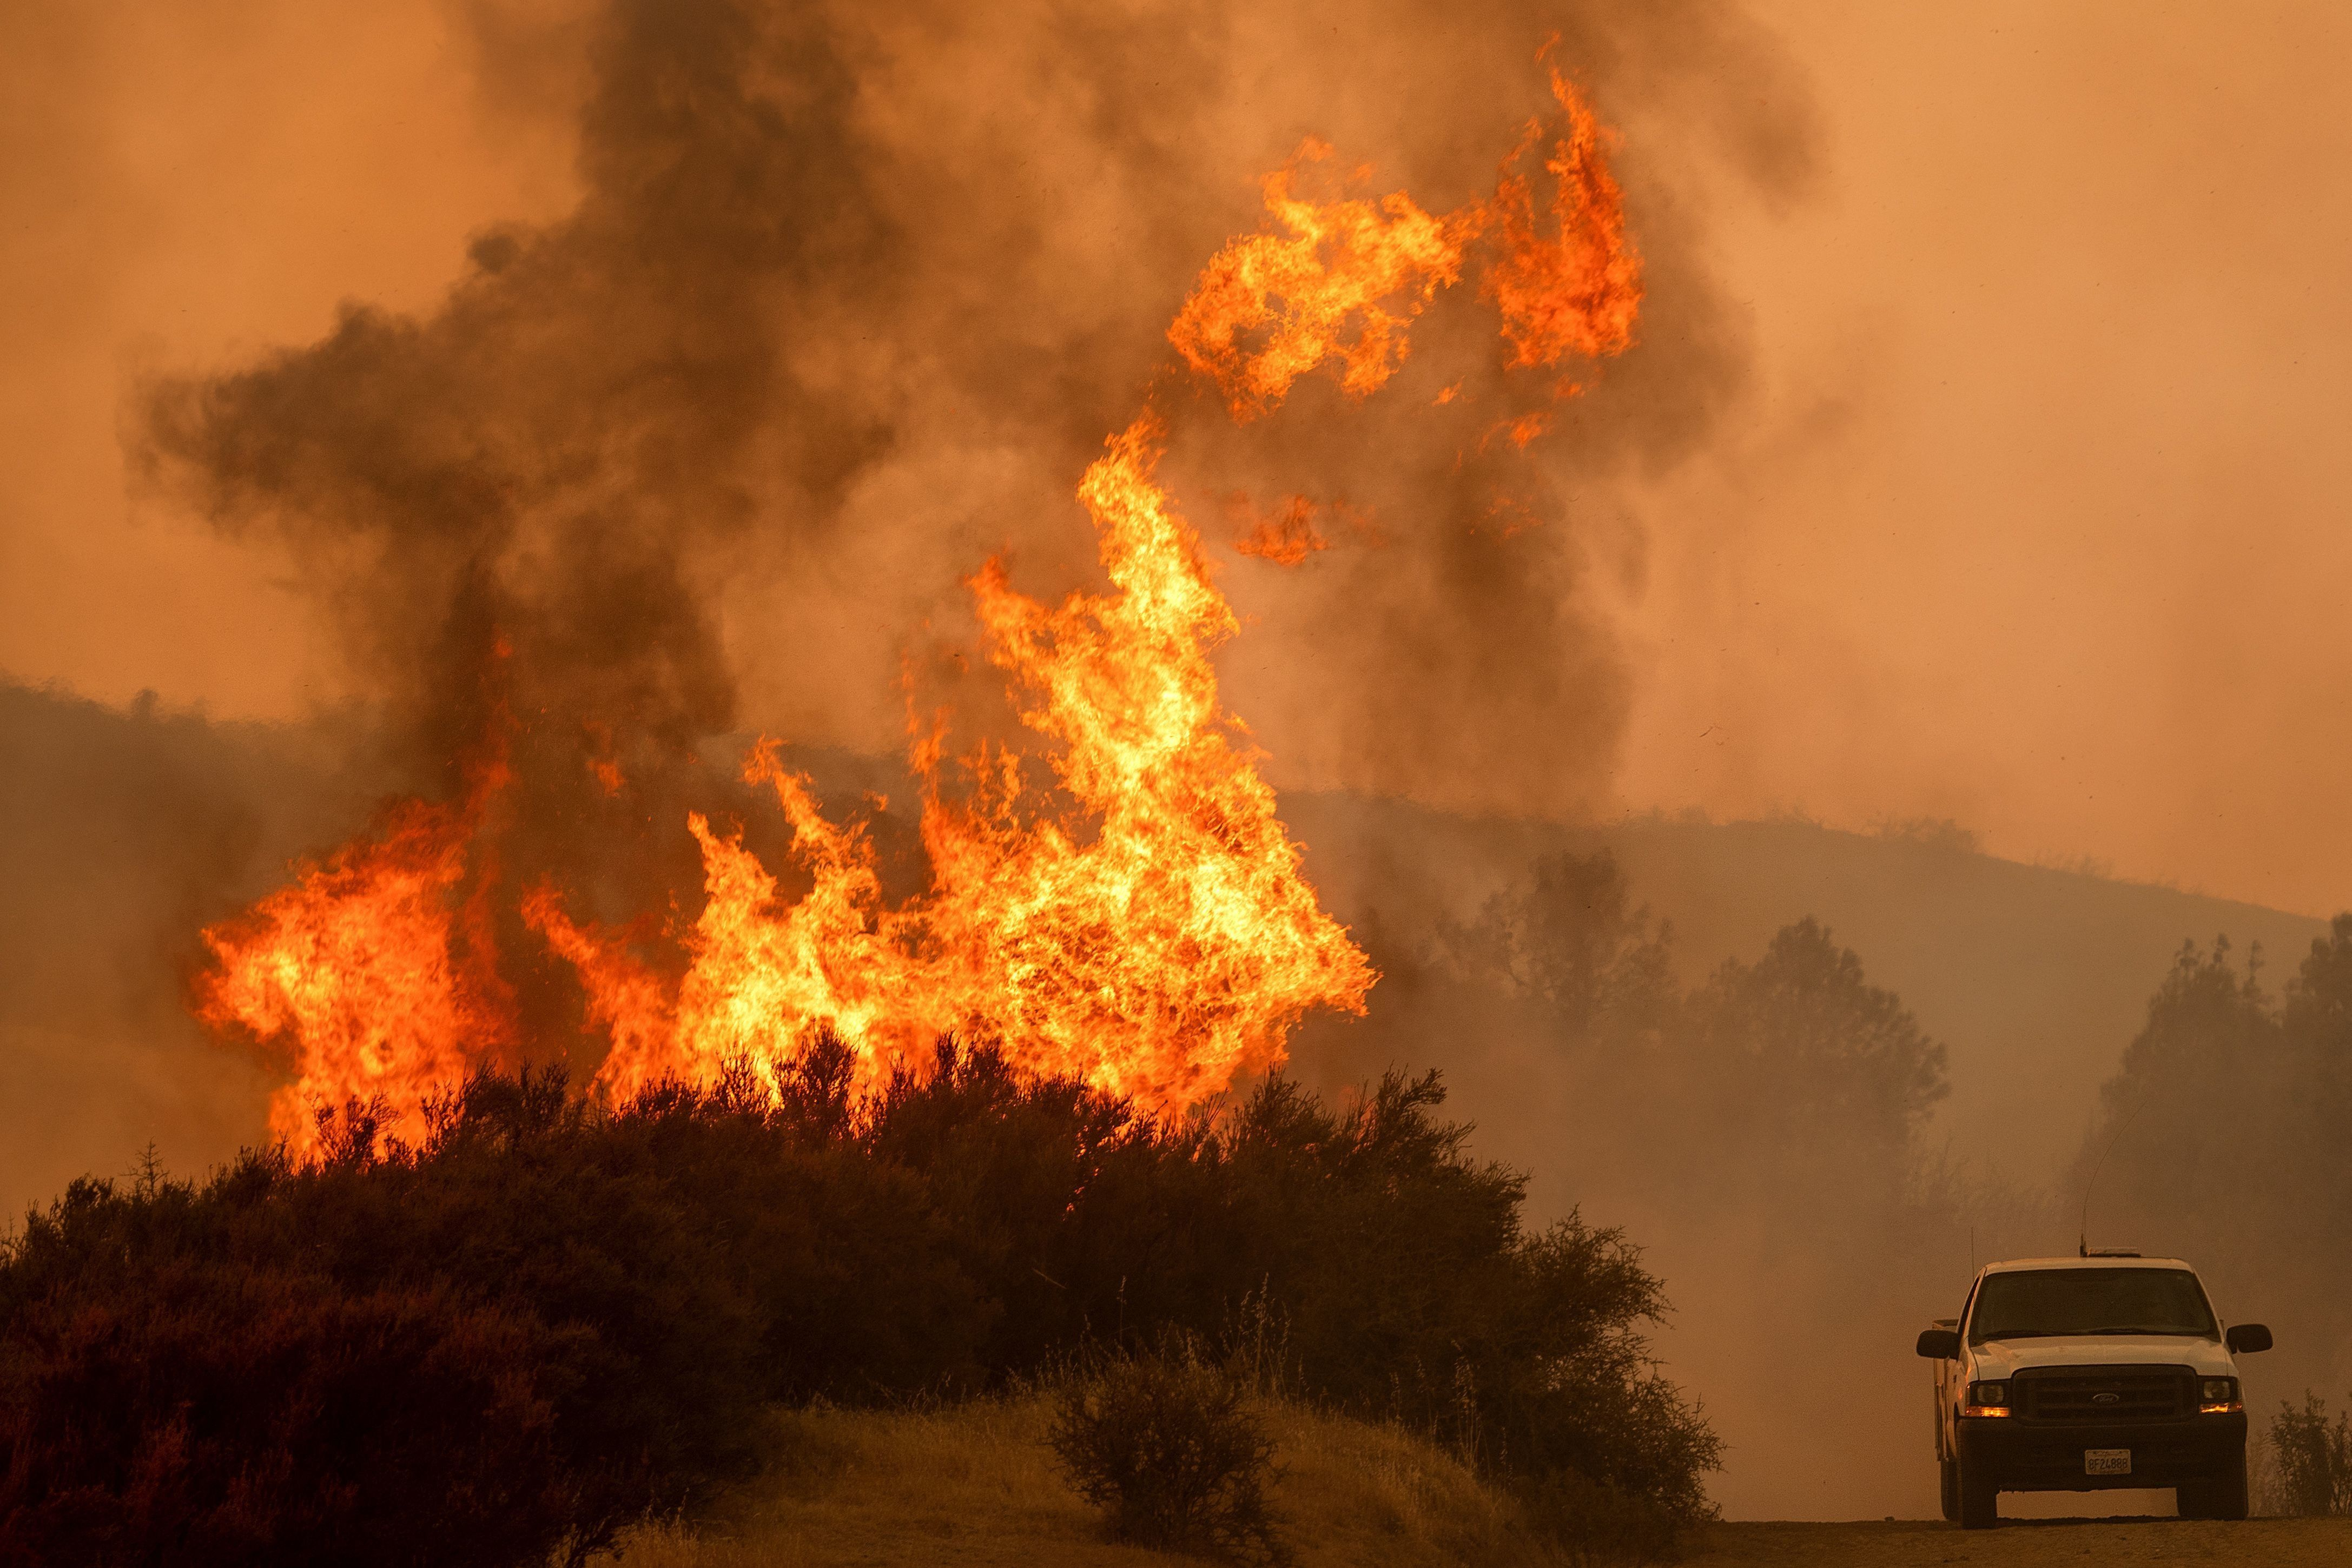 TOPSHOT - Flames leap above a vehicle on High Valley Rd as the Ranch Fire, part of the Mendocino Complex Fire, burns near Clearlake Oaks, California, on August 5, 2018. - Several thousand people have been evacuated as various fires swept across the state, although some have been given permission in recent days to return to their homes. (Photo by NOAH BERGER / AFP)        (Photo credit should read NOAH BERGER/AFP/Getty Images)